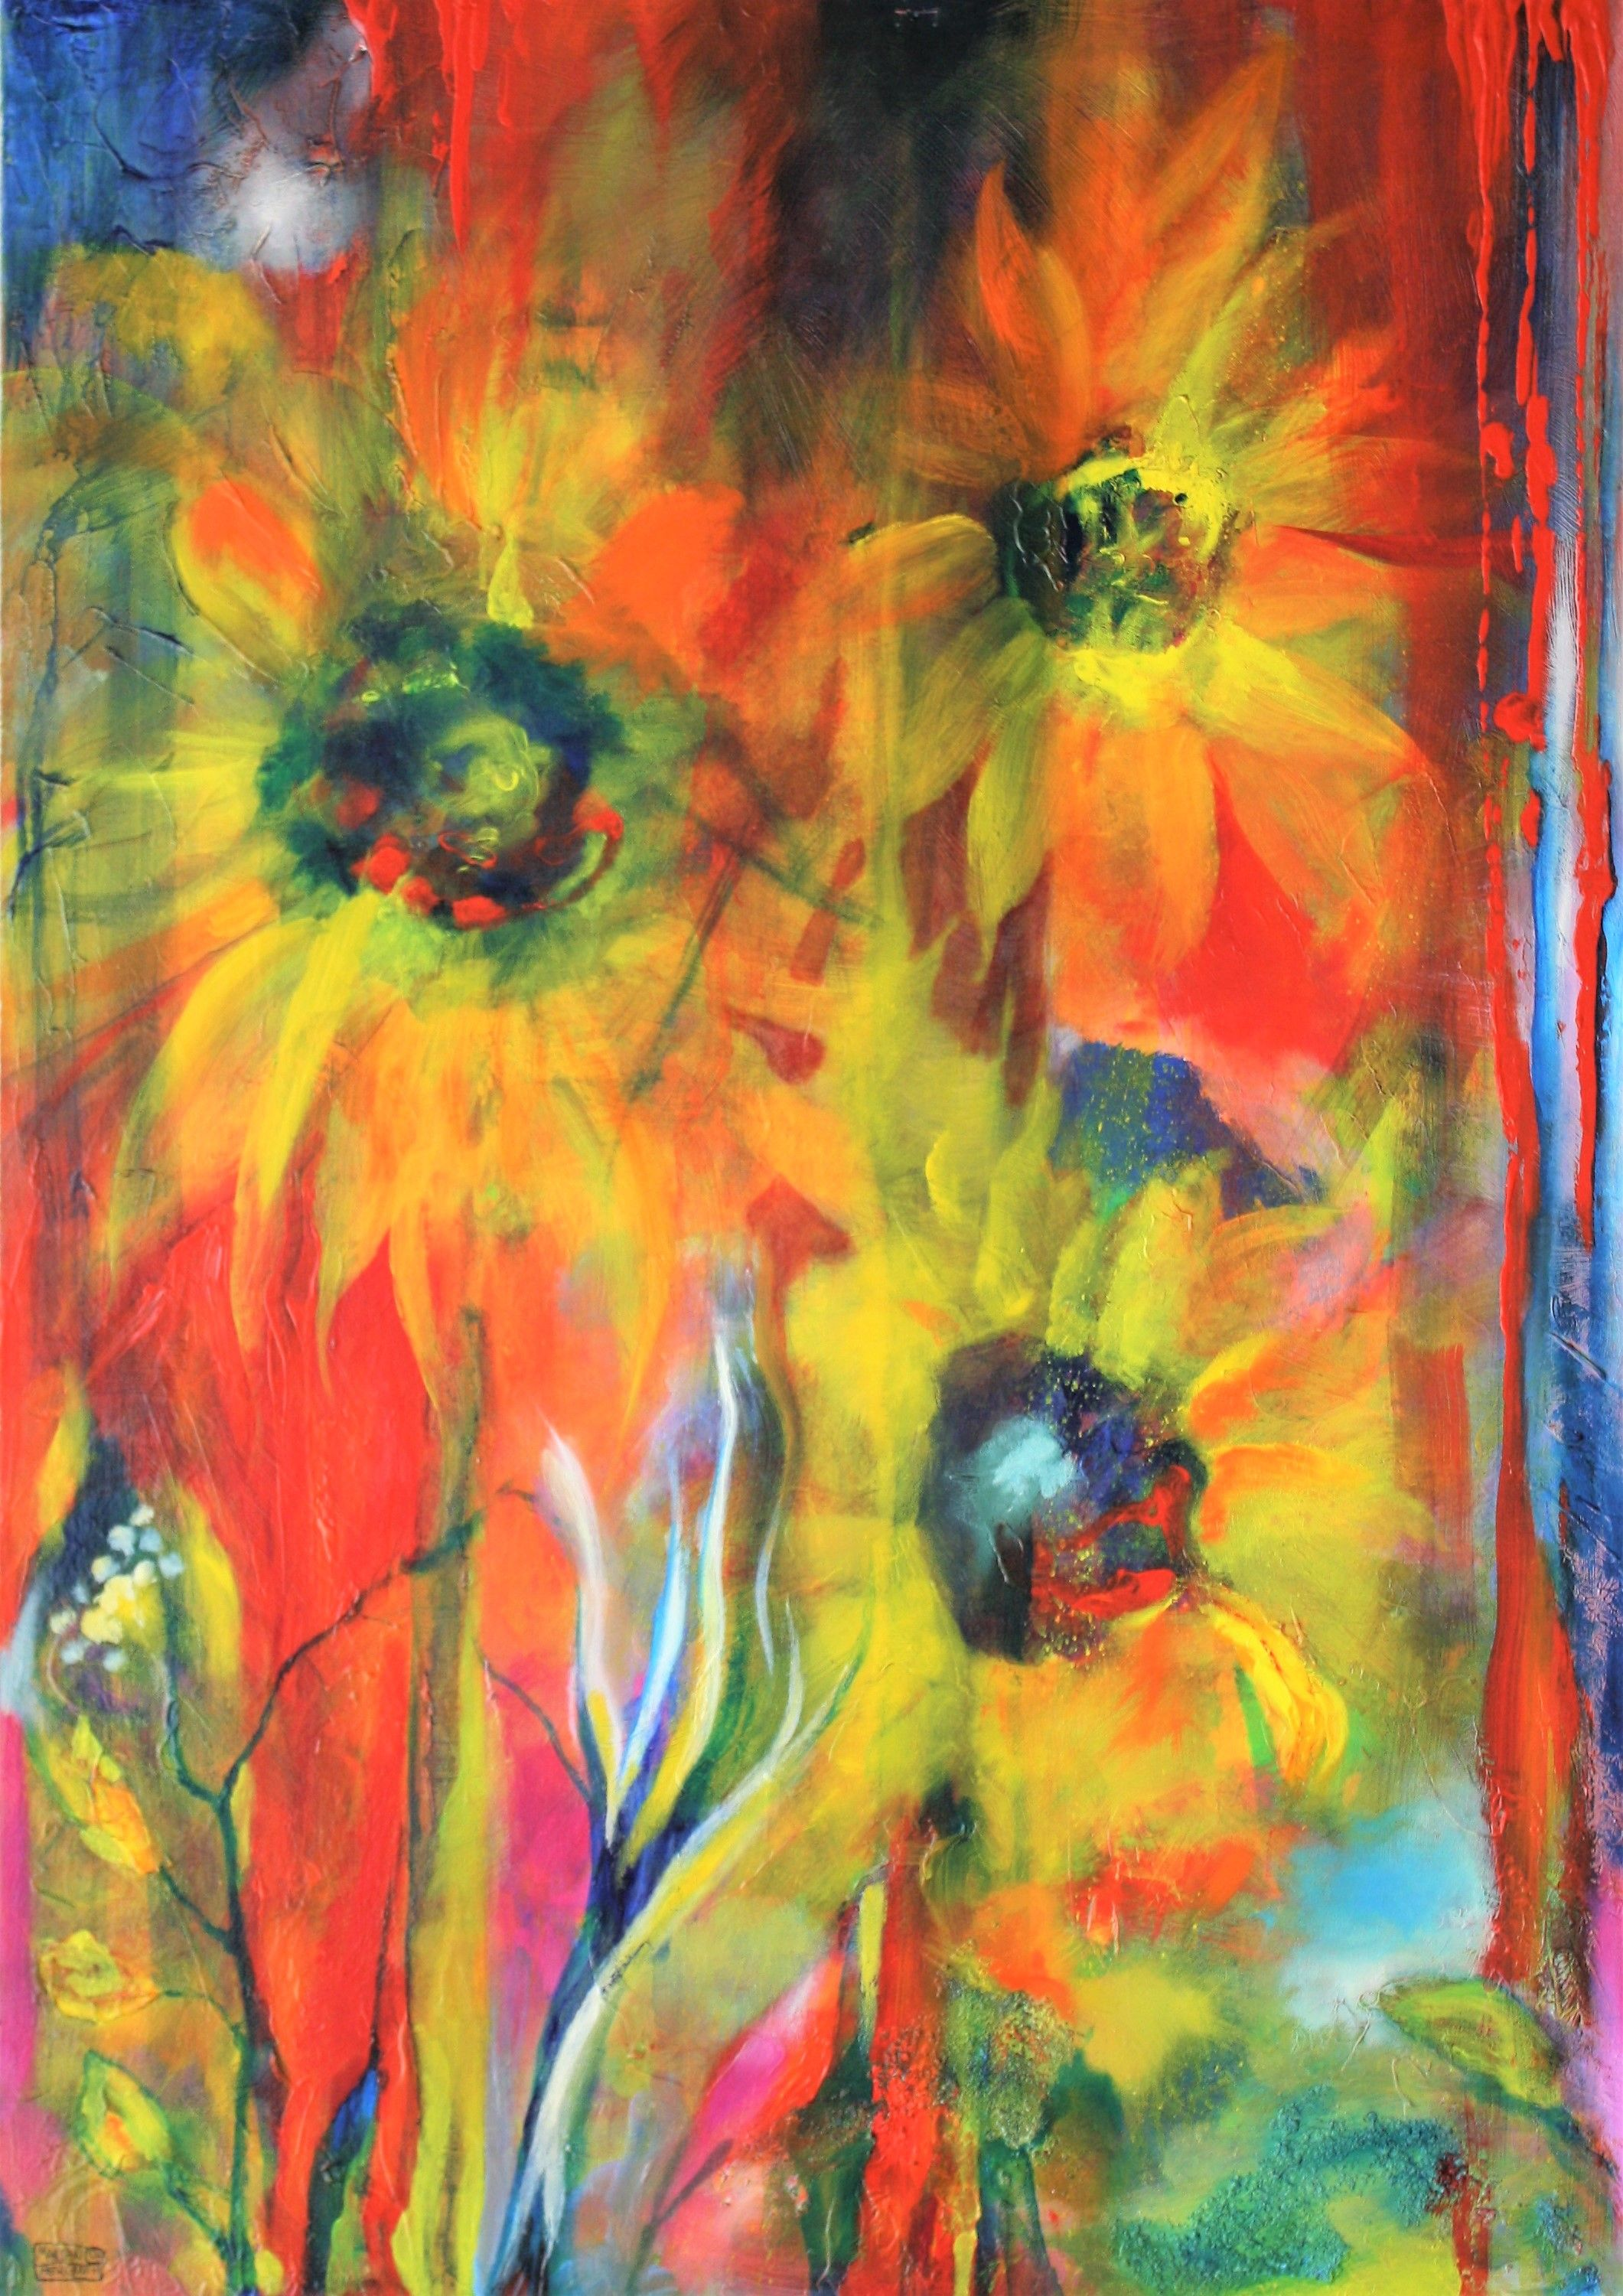 Mr Marian Hergouth, Sonnenblumen, Sunflowers, Painting Acryliclic And Oil, 90